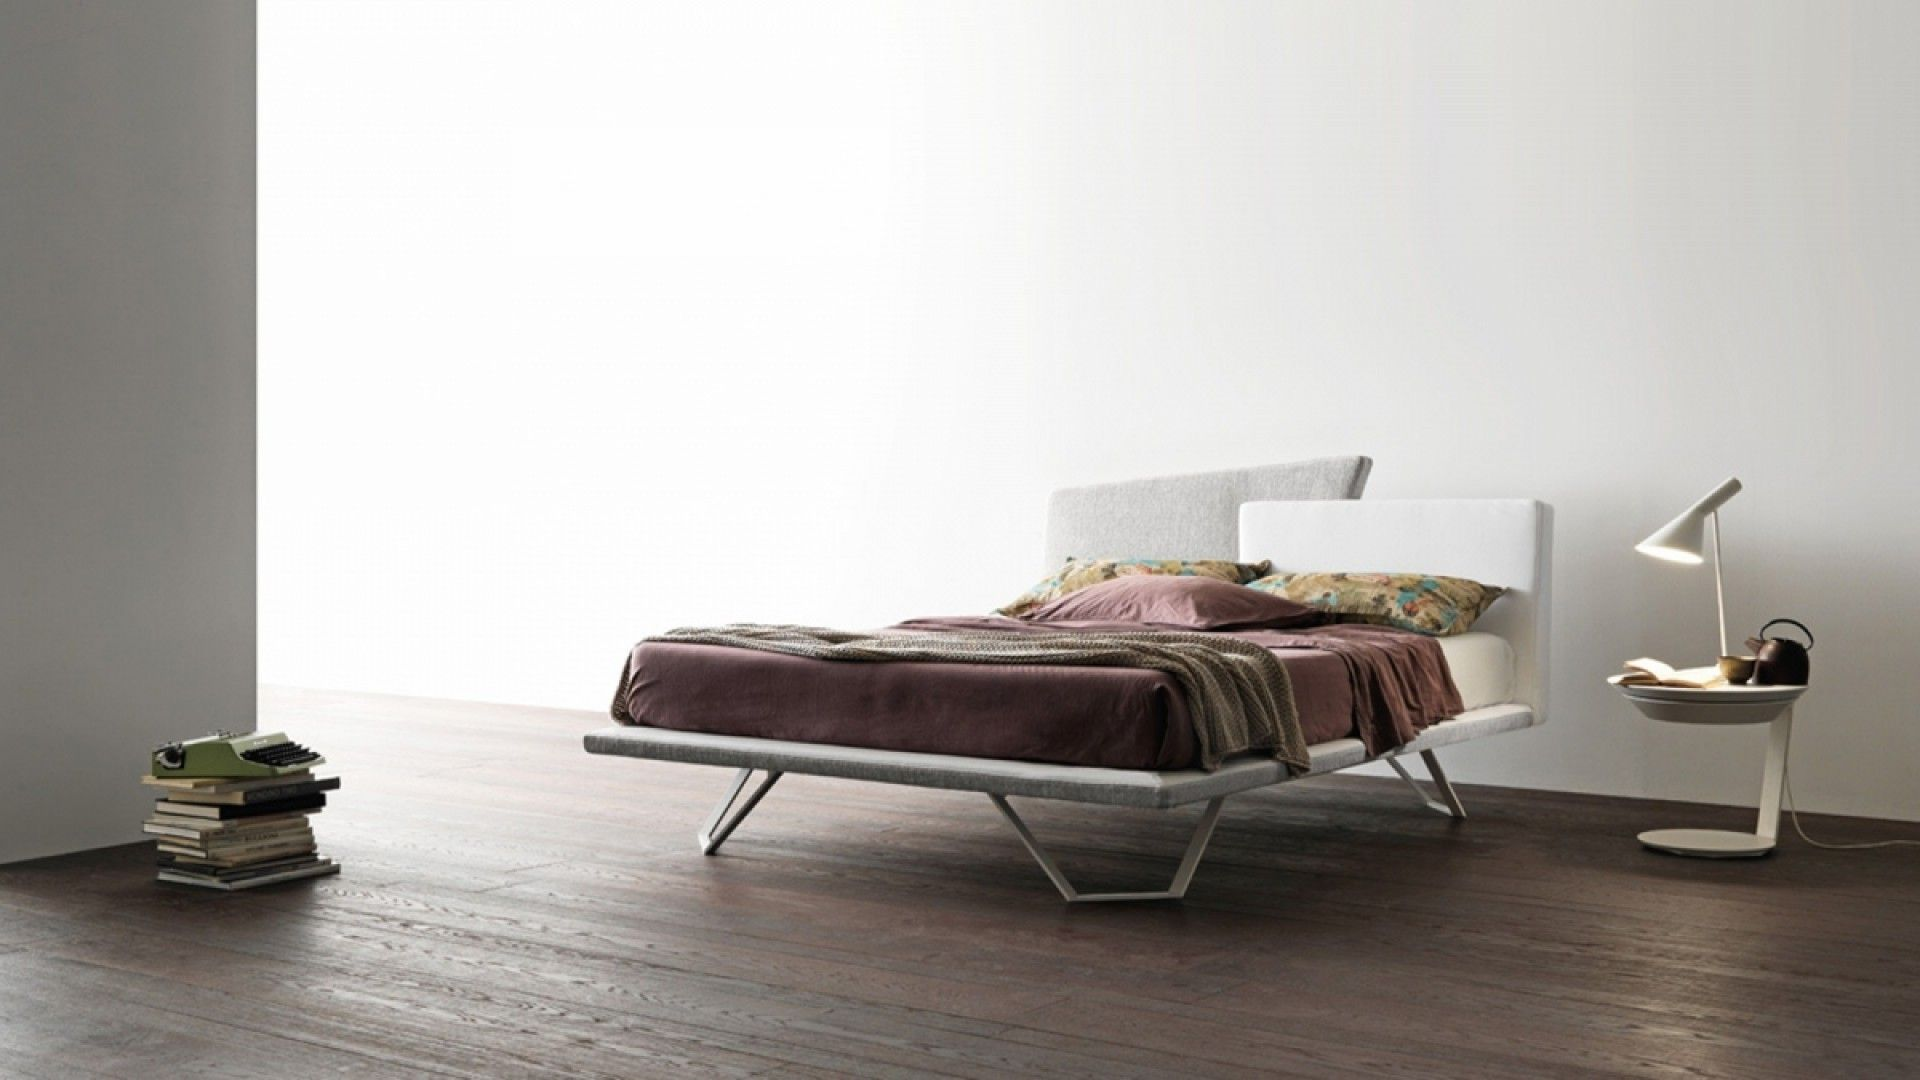 Presotto Camere Da Letto.Meeting Bed Presotto Bed Lettomeeting Bedroom Homedecor